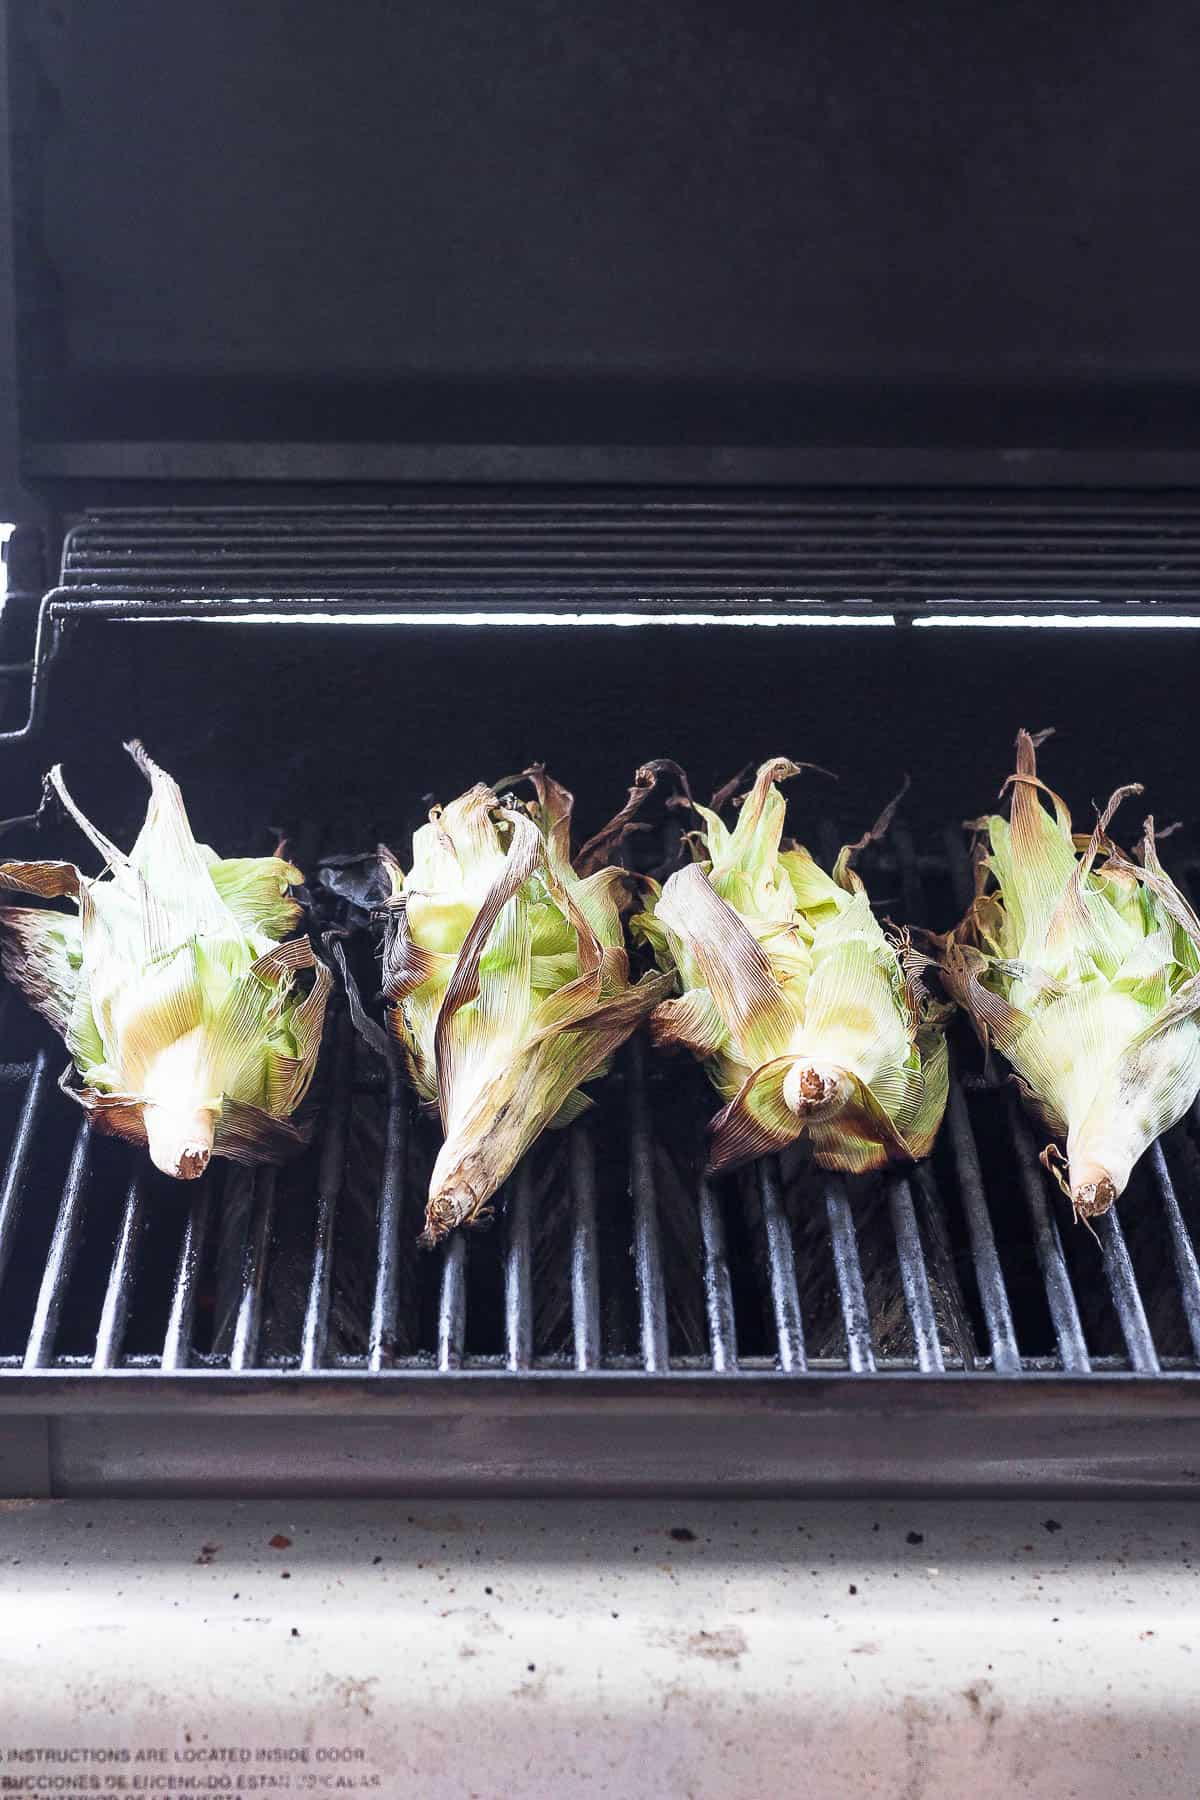 4 corns with husks on grill